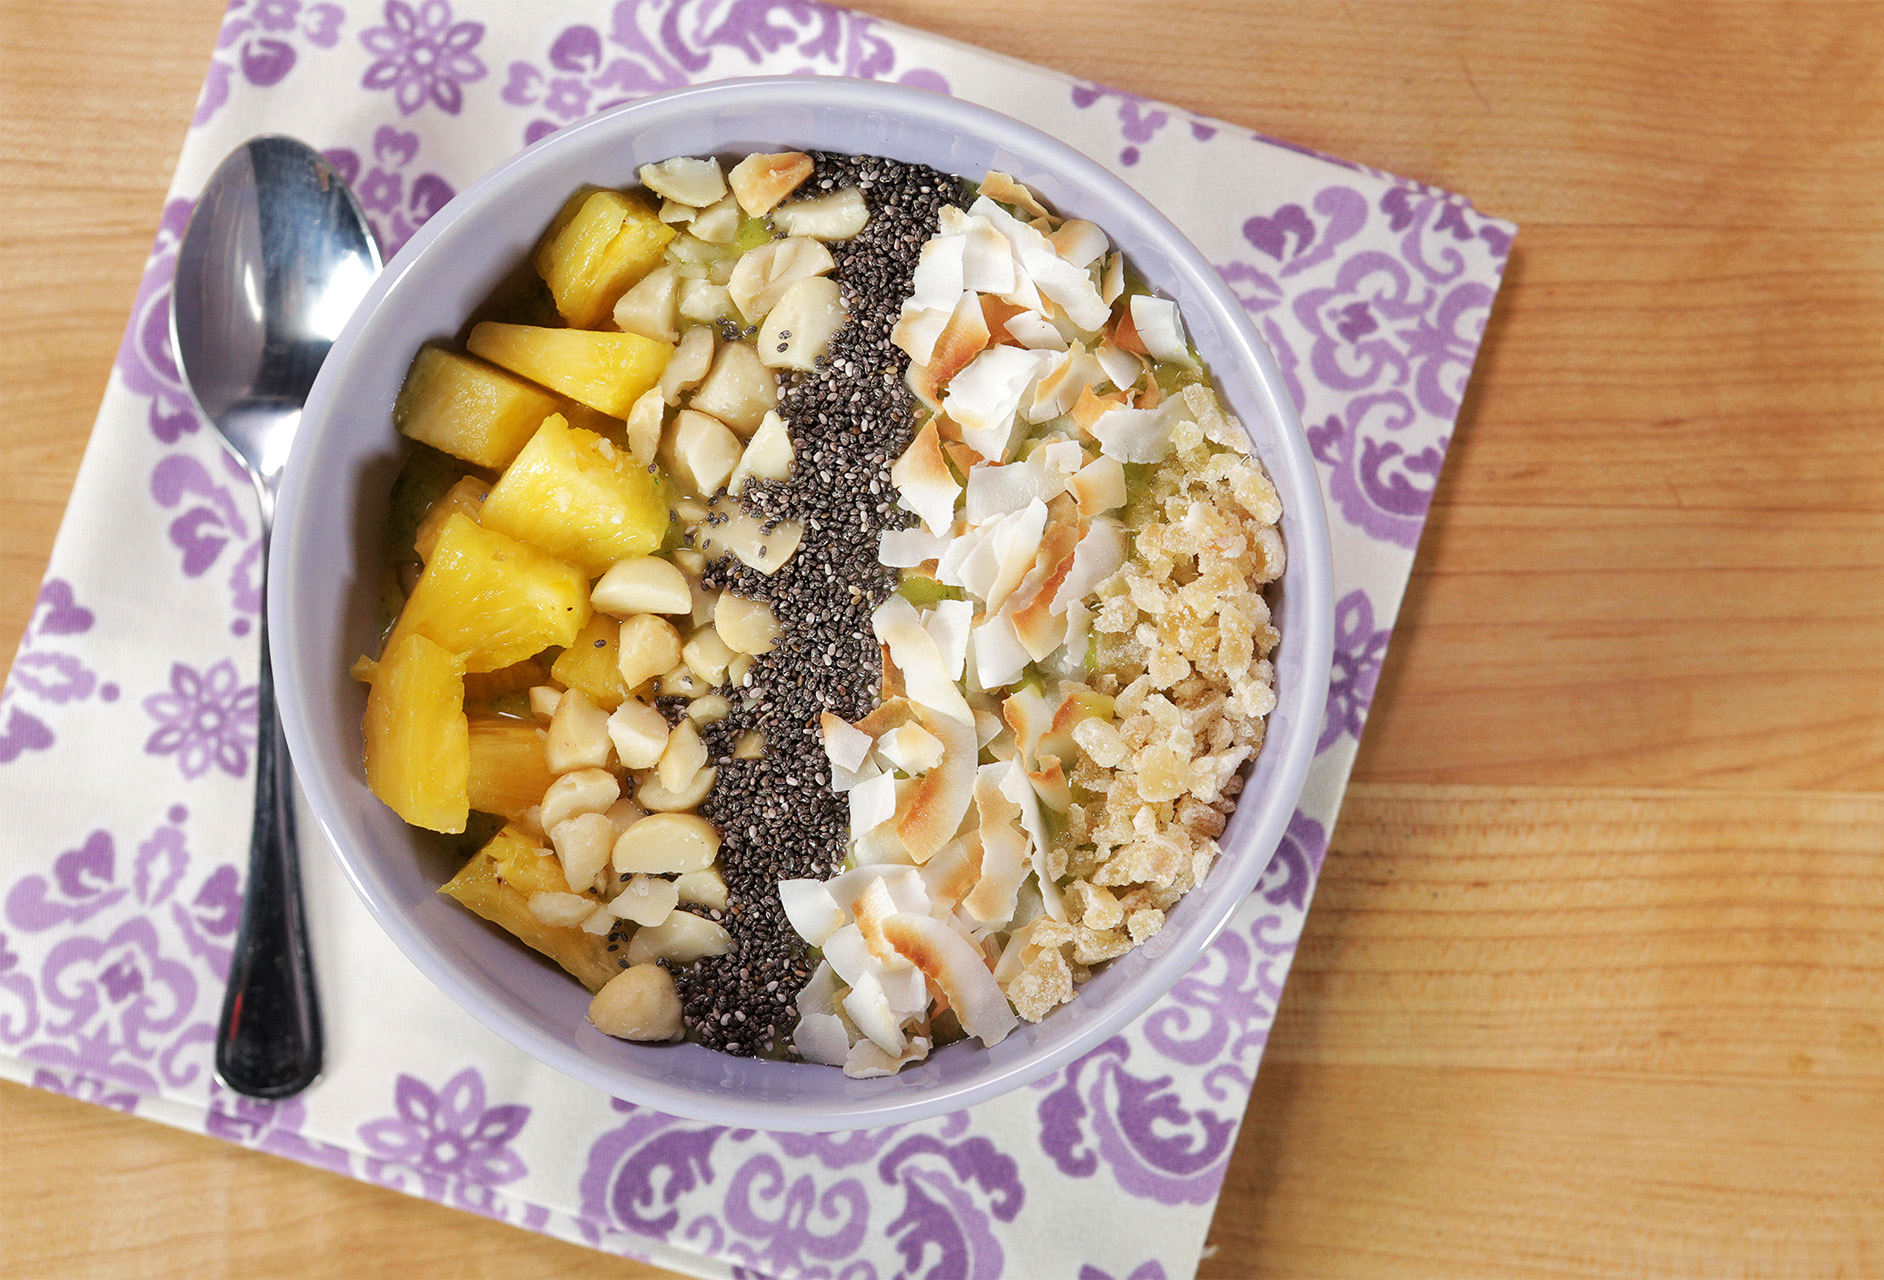 TROPICAL GETAWAY SMOOTHIE BOWL